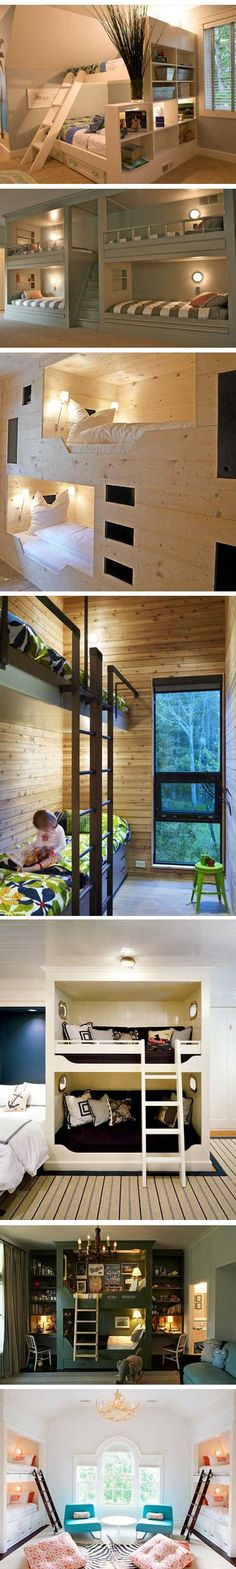 the greenish design would be so awesome in one bedroom when we finish the next basement or some version of it...